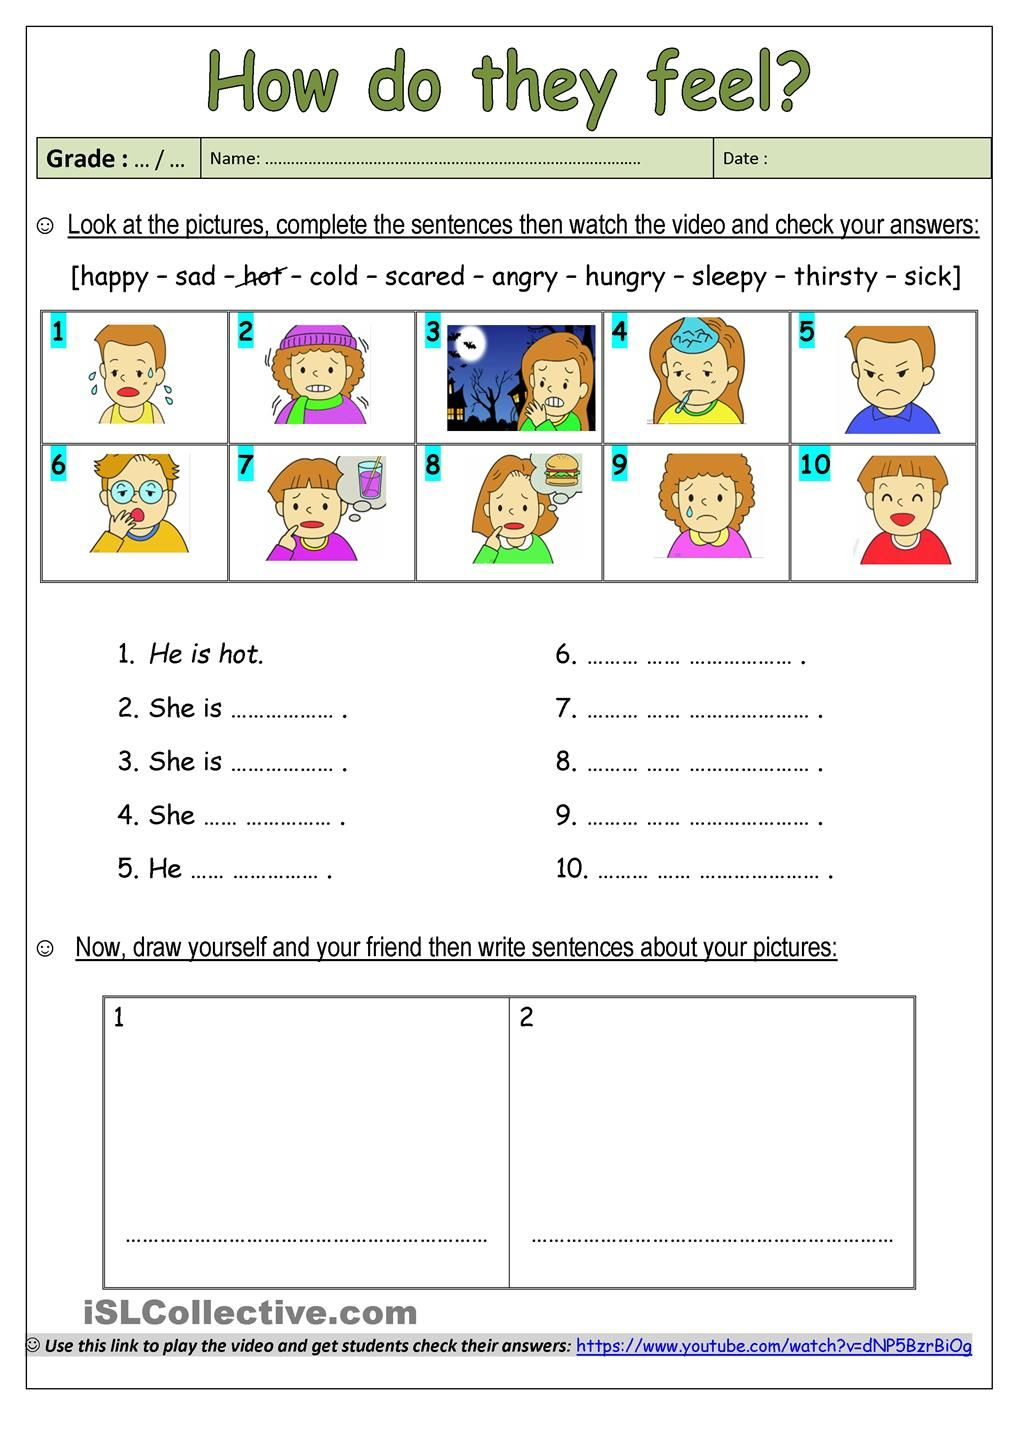 Writing Exercises For Beginning Esl Students   10 Creative ESL in addition colorning sheets   Fun Worksheets For Esl Students Christmas additionally Free EFL ESL Worksheets  activities and lesson plans from Handouts in addition Amazon    Amazing Theme Based ESL Worksheets for Beginners THEME moreover Printables  Beginning Esl Worksheets  Lemonlilyfestival Worksheets together with Basic Independent and Dependent Variable Worksheet for ESL Students additionally This worksheet would be helpful with learning emotions and beginning likewise ESL Worksheets   Free and Printable additionally Writing Ideas For Beginning Esl Students   Short writing activities as well  furthermore Basic Reading  prehension Worksheets Beginning Esl Exercises For together with Past Simple Affirmative Negative Games Activities ESL Worksheets likewise Esl e book writing 1 furthermore Opposite Games and Worksheets for ESL additionally Do You Like Fruit Worksheet Beginner Elementary Level Worksheets For together with . on worksheets for beginning esl students